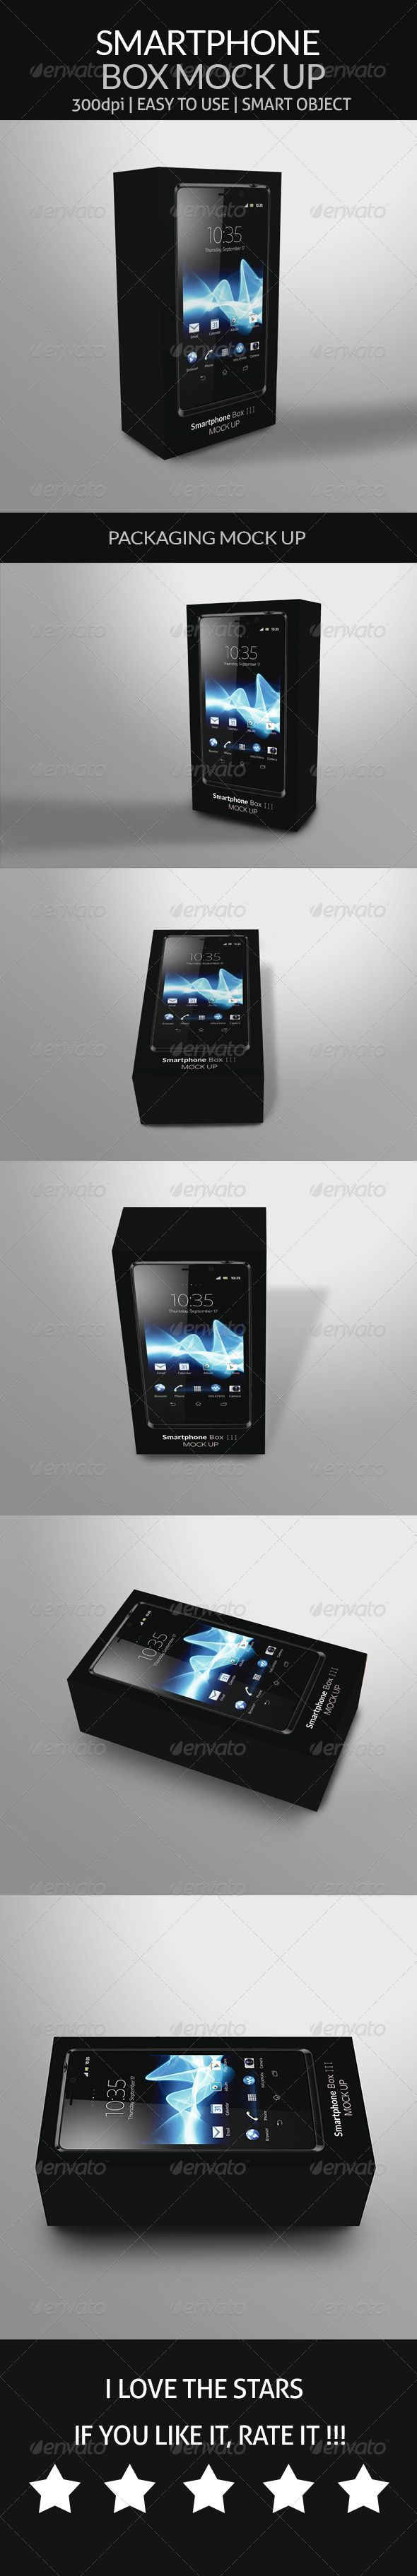 Smartphone – Box Mock Up http://graphicriver.net/item/smartphone-box-mock-up/8748241 #smartphone #mockup #box #android #tab